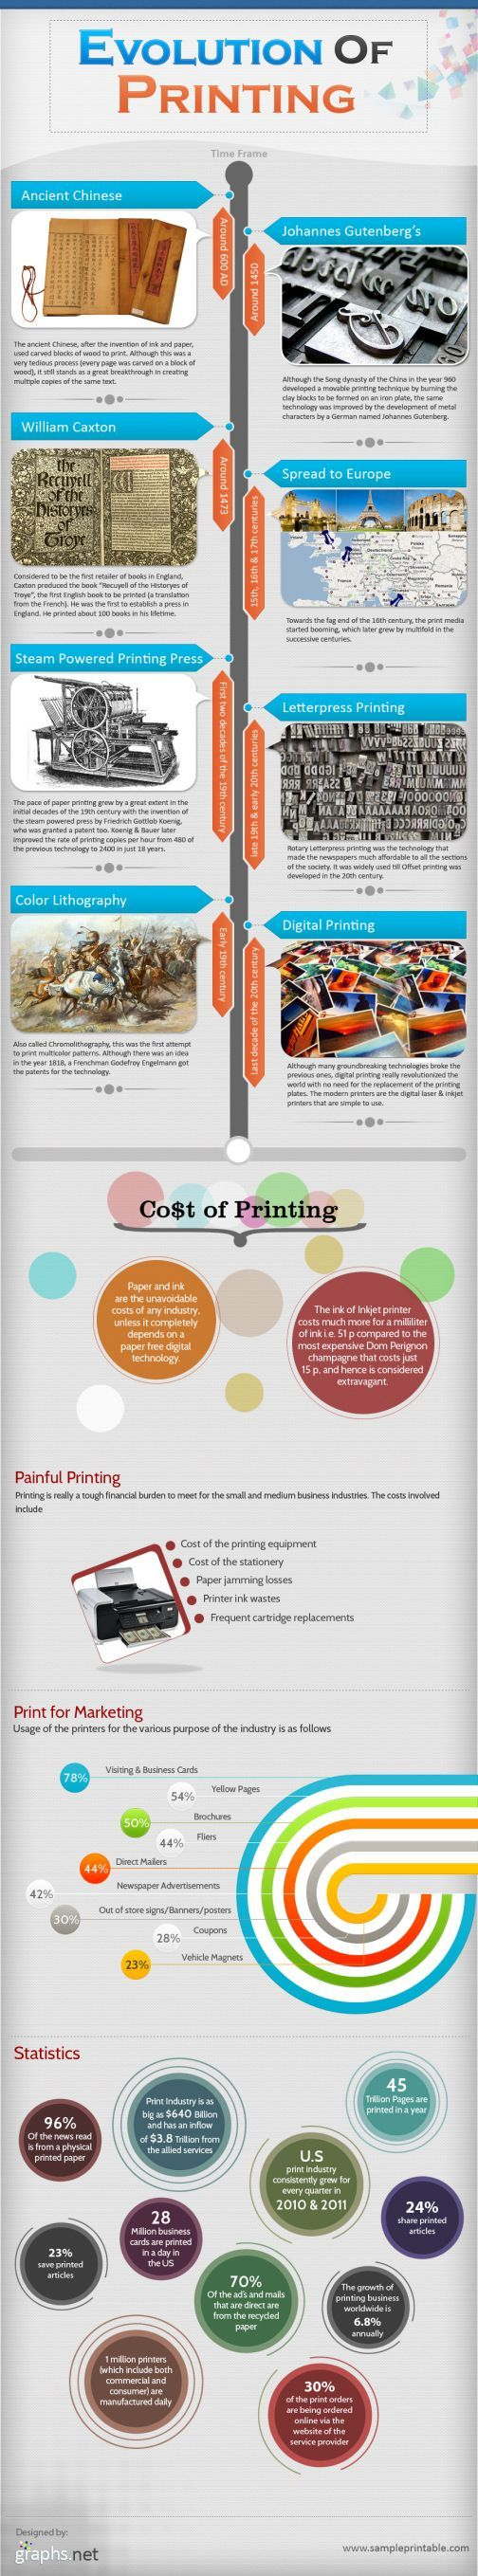 The evolution of PRINTING.  V2 Media & Advertising SERVICES:  #ConceptCreation #CorporateIdentity #VisualIdentity #Logos #Design & #Layout #CorporateStationery #CorporateProfile #Catalogues #Folders #PaperBags #Brochures #Leaflets & #Flyers #Business #cards #Posters #Stickers #PopUp #Banners #RollUp Banners #Danglers #ShelfTalkers #EventBranding  For sample output visit our website 🌐 www.v2media.ae Or Contact us ☎️ + 971 4 320 5511 #print #printing #printingpress #dubai #cheap #affordable…